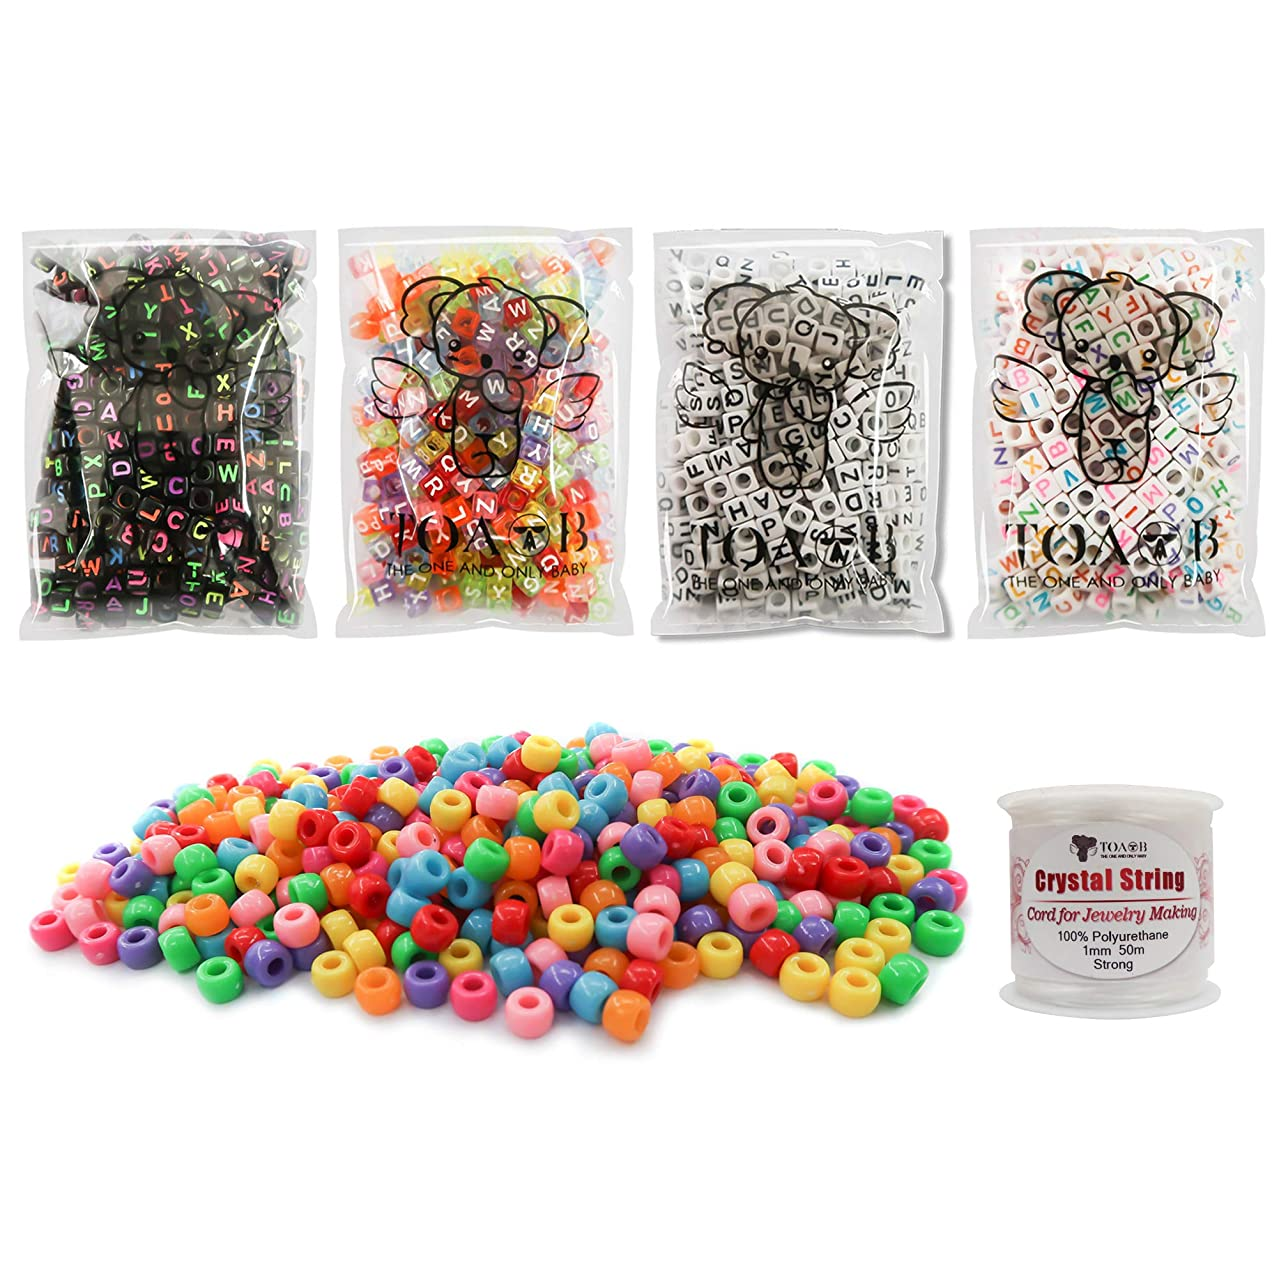 TOAOB 1200pcs 4 styles Letter Beads Acrylic Cube Multi Colors Alphabet Beads and Pony Beads kit with Elastic Cord for DIY bracelet necklace Making